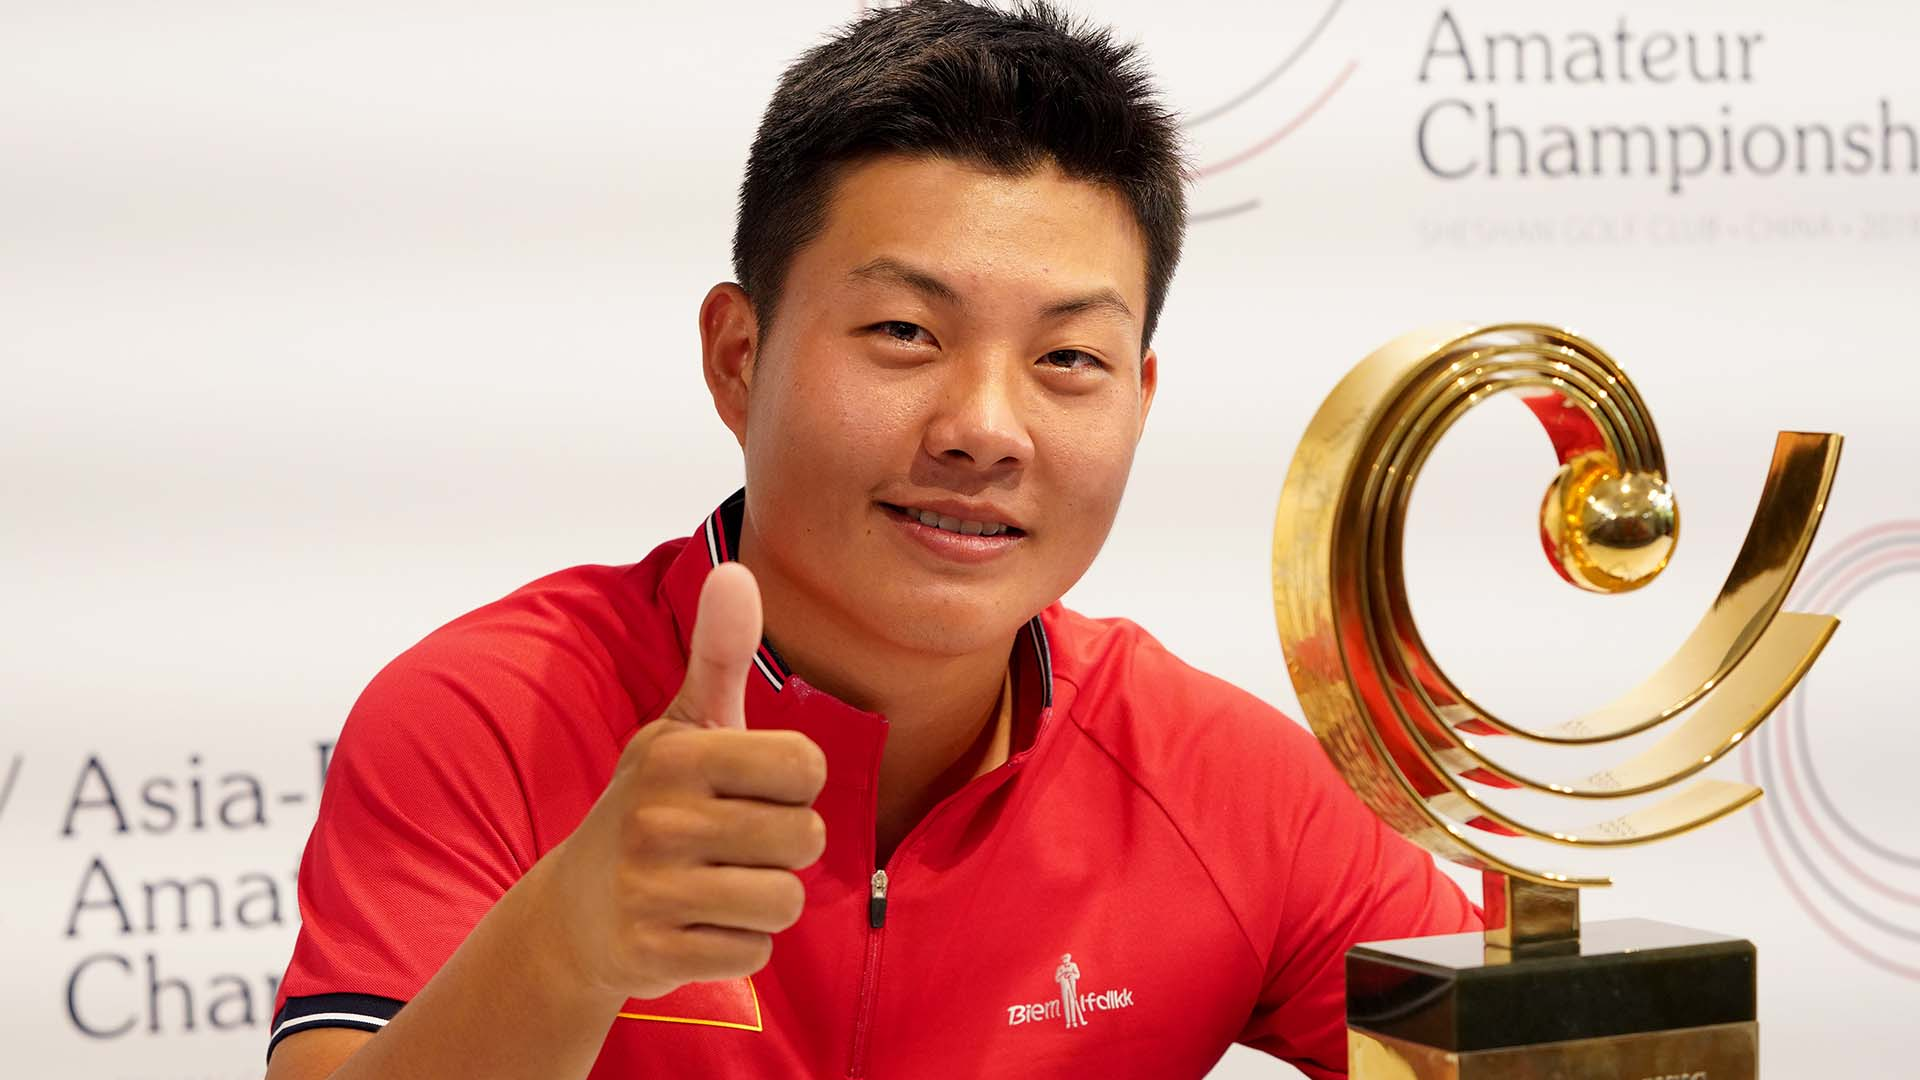 Yuxin Lin Wins Asia Pacific Amateur In Playoff Earns Second Trip